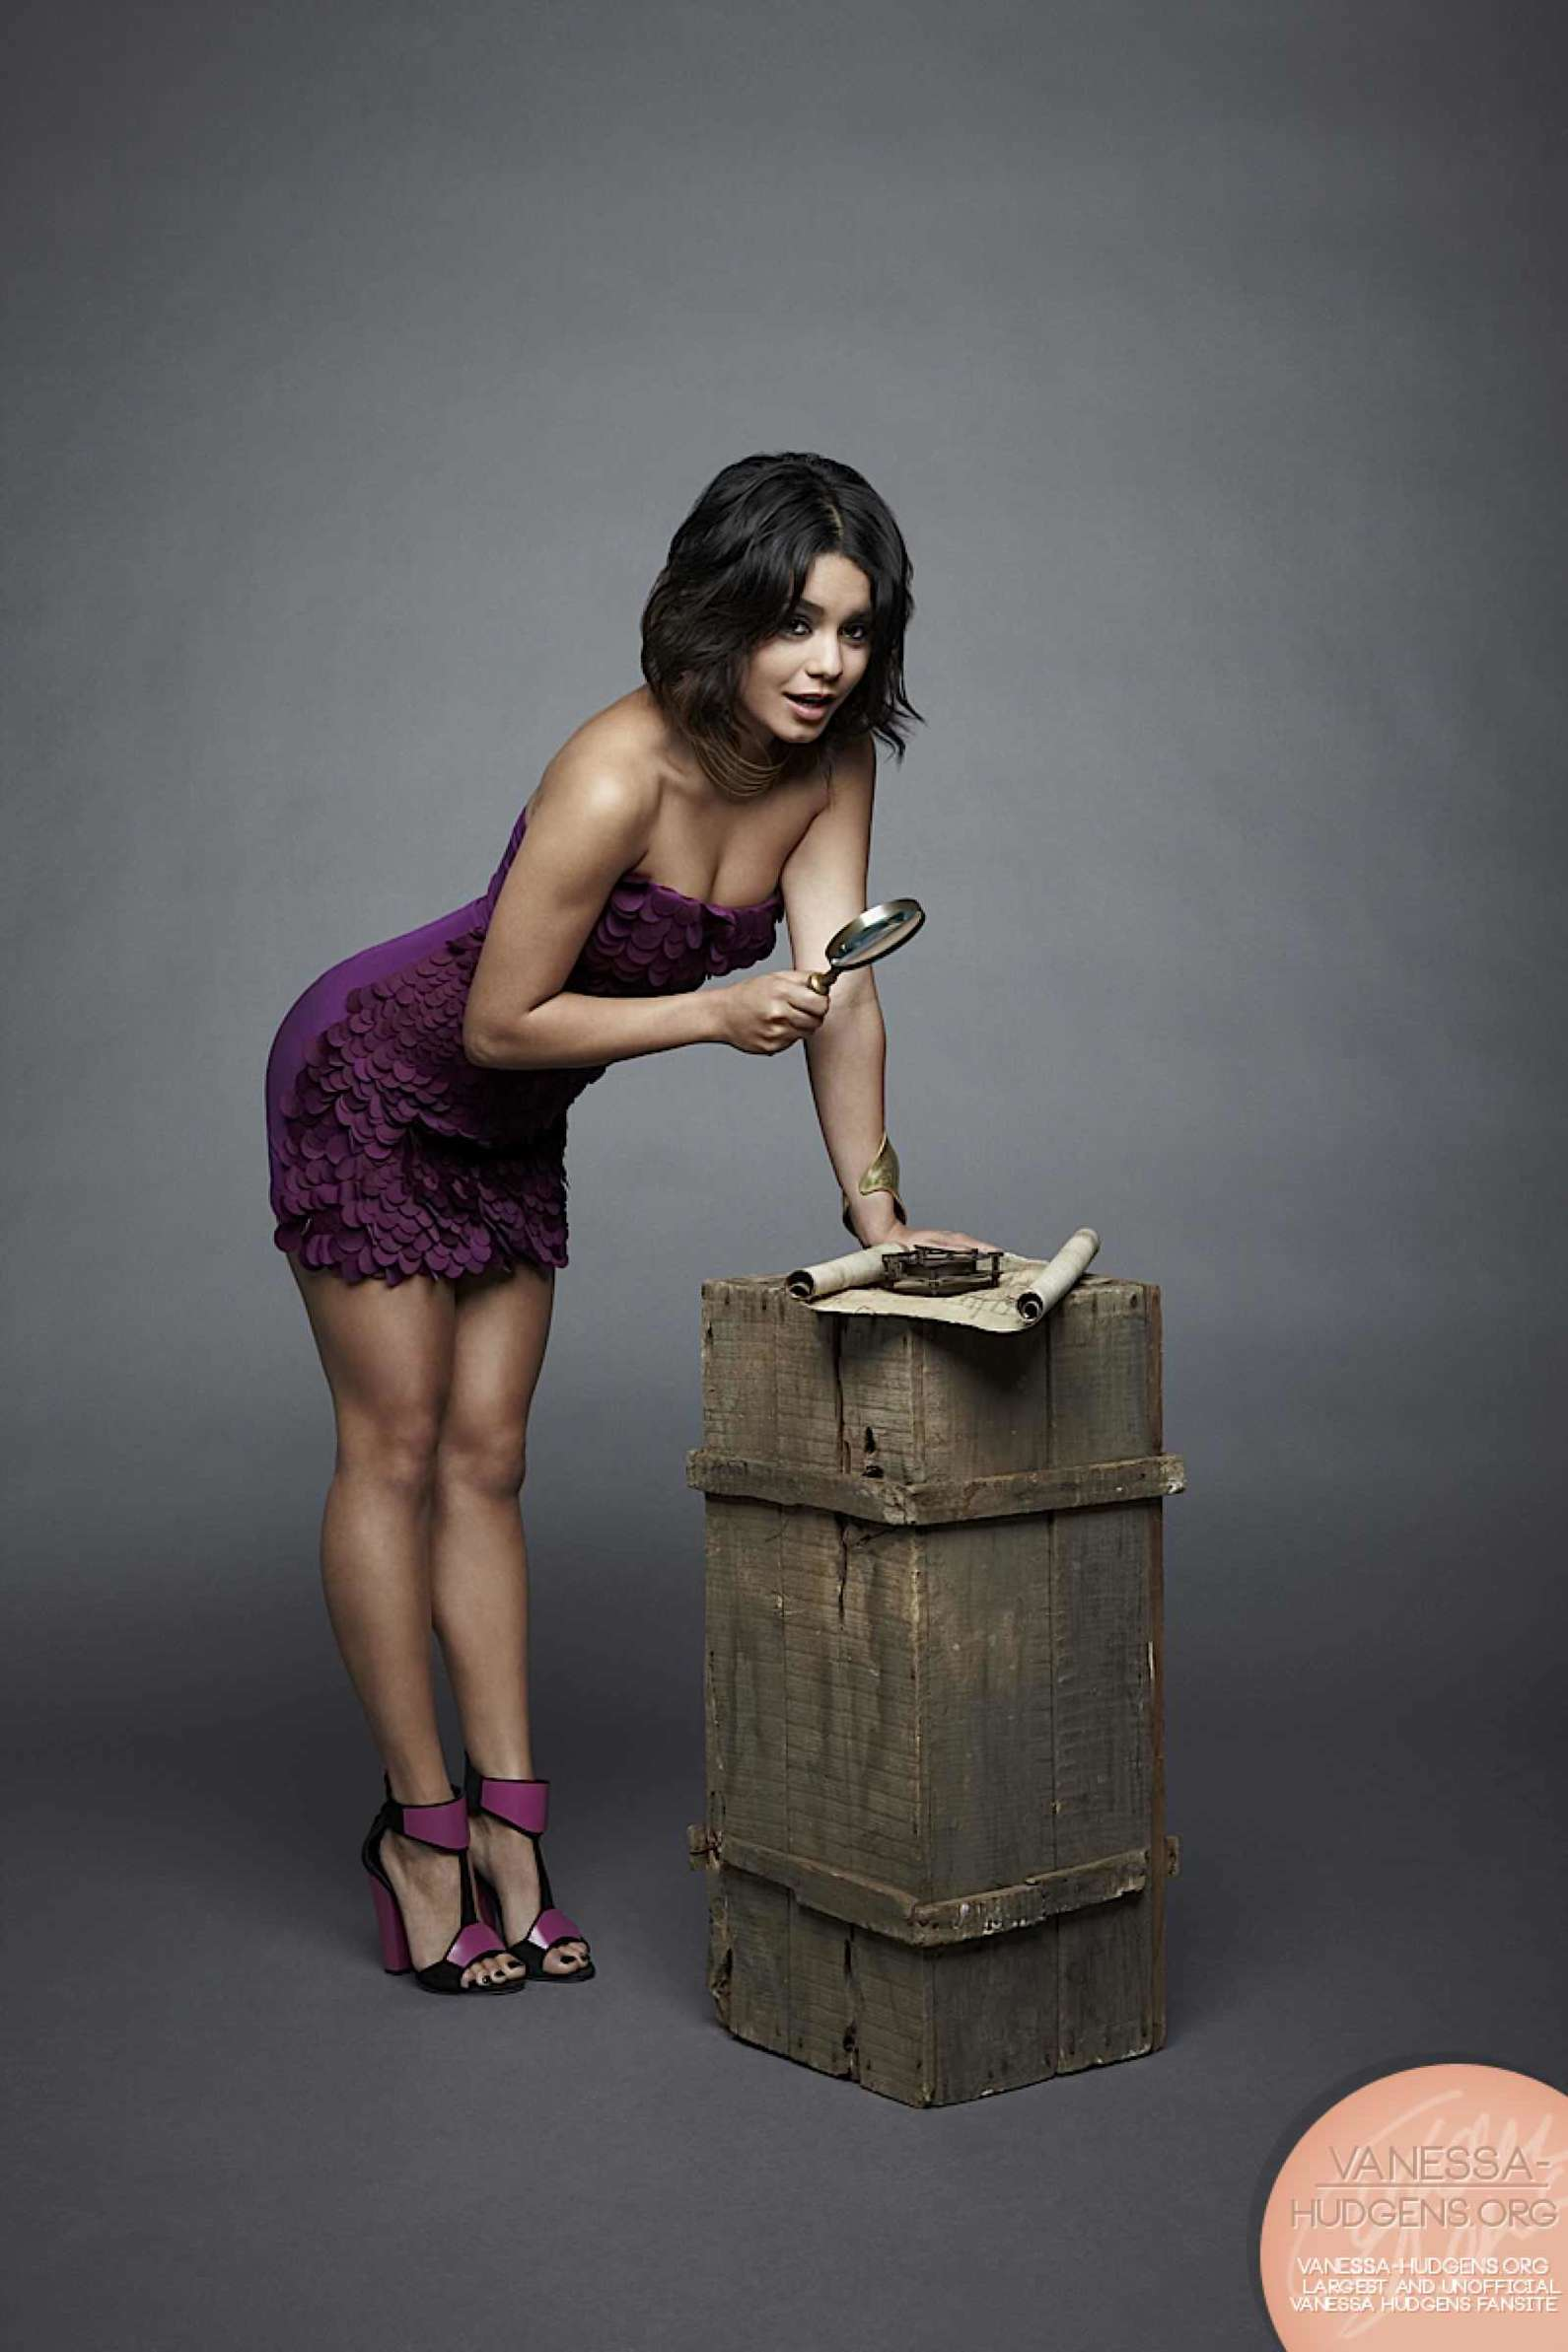 Something Vanessa hudgens nude photoshoot have